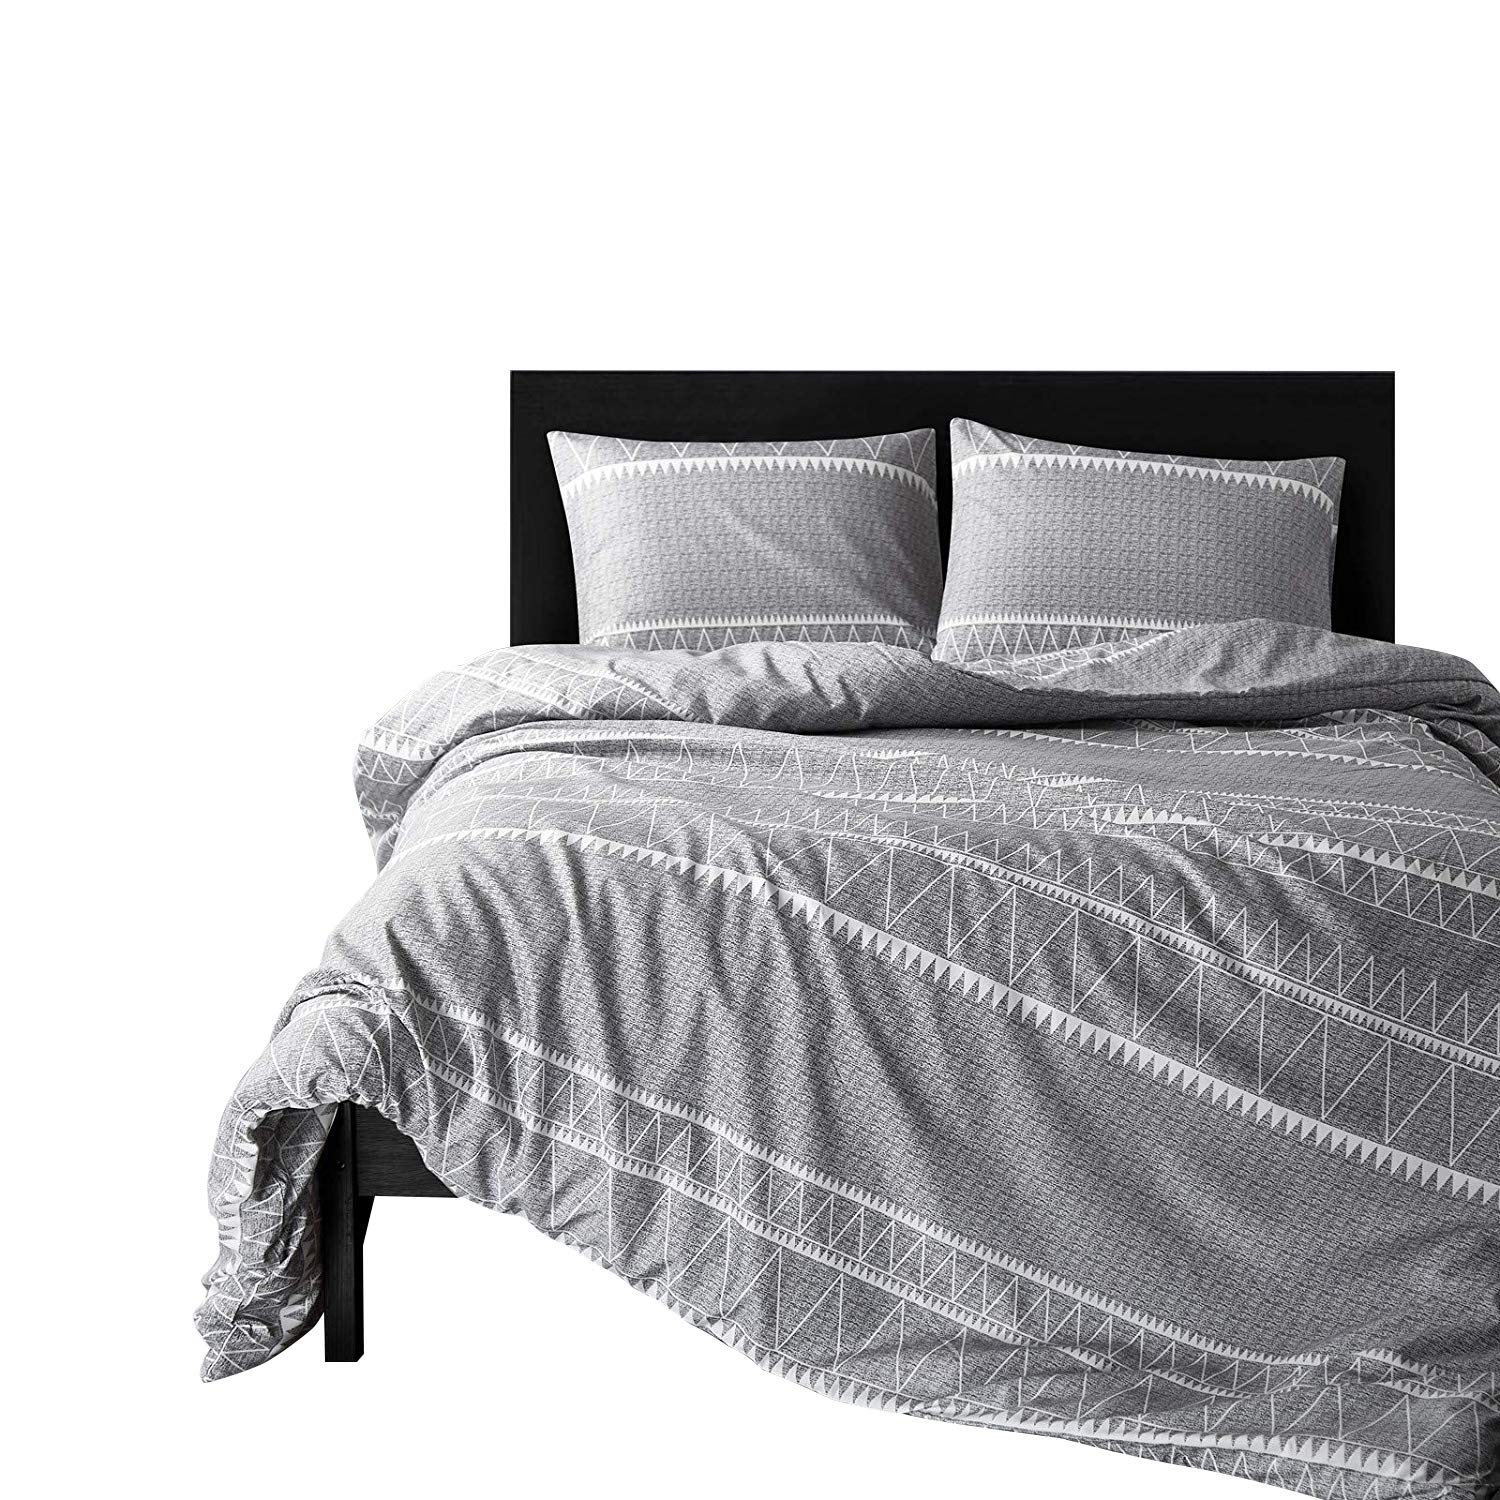 HYPREST Bohemian Kids Grey Duvet Cover Set Twin Soft Grey Triangle 3PC Comforter Cover Set(Twin) by HYPREST